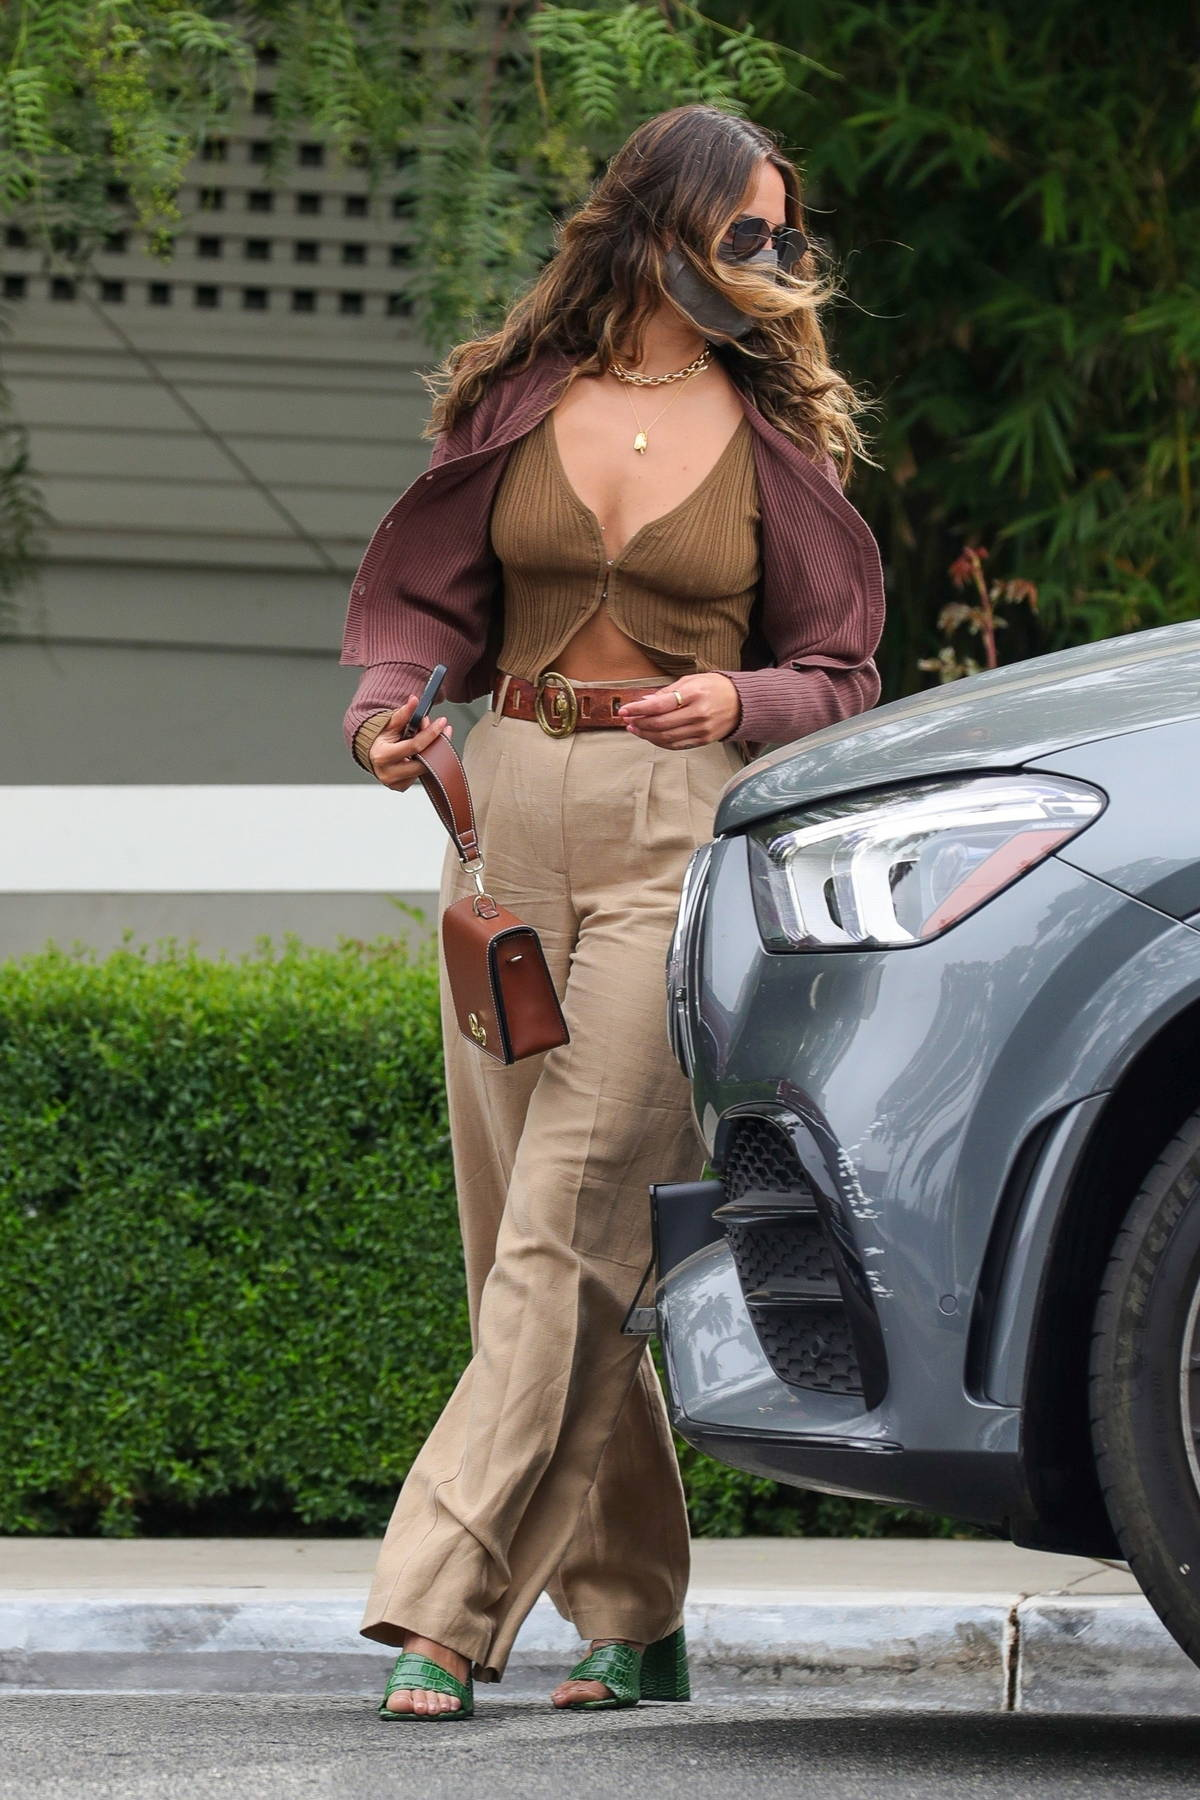 Eiza Gonzalez rocks a stylish crop top with a cardigan while leaving brunch in West Hollywood, California